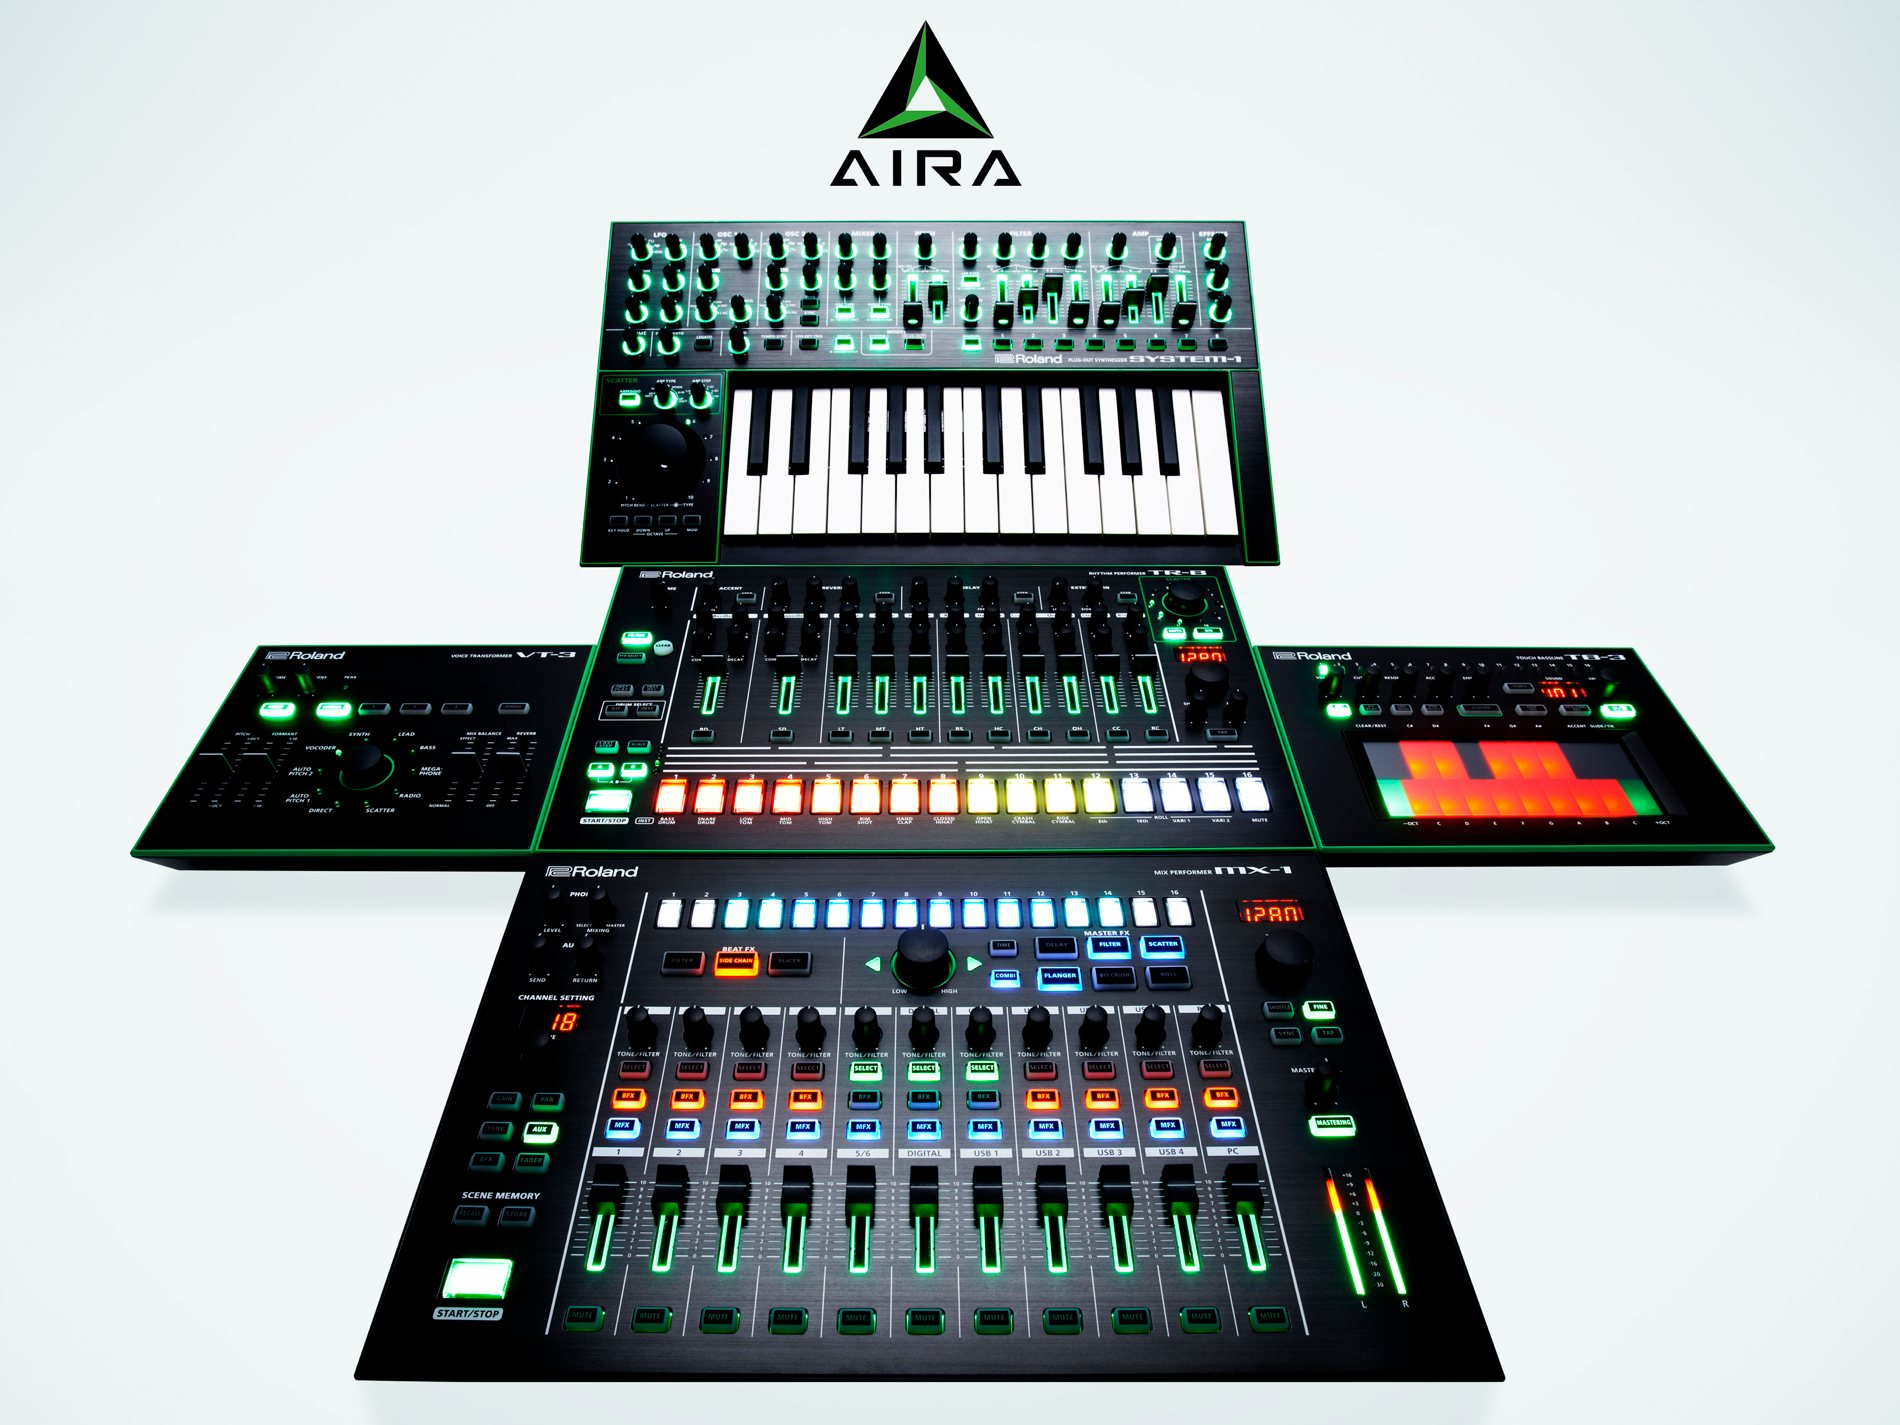 roland 39 s new aira mixer is a performance tool for all your gear cdm create digital music. Black Bedroom Furniture Sets. Home Design Ideas